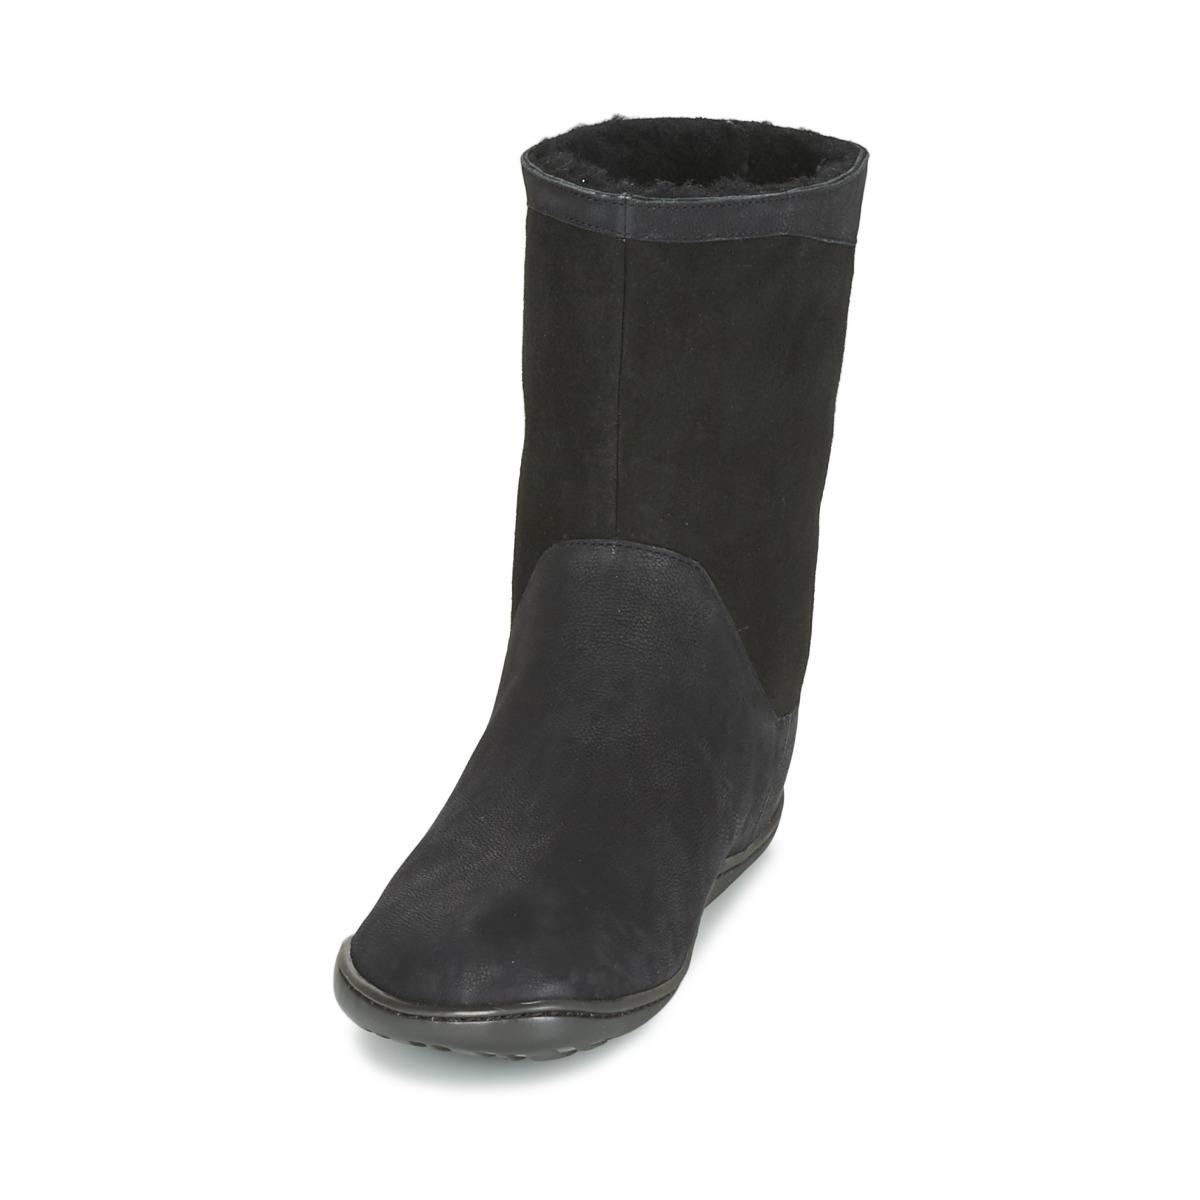 Camper Leather Peu Cami Women's Mid Boots In Black